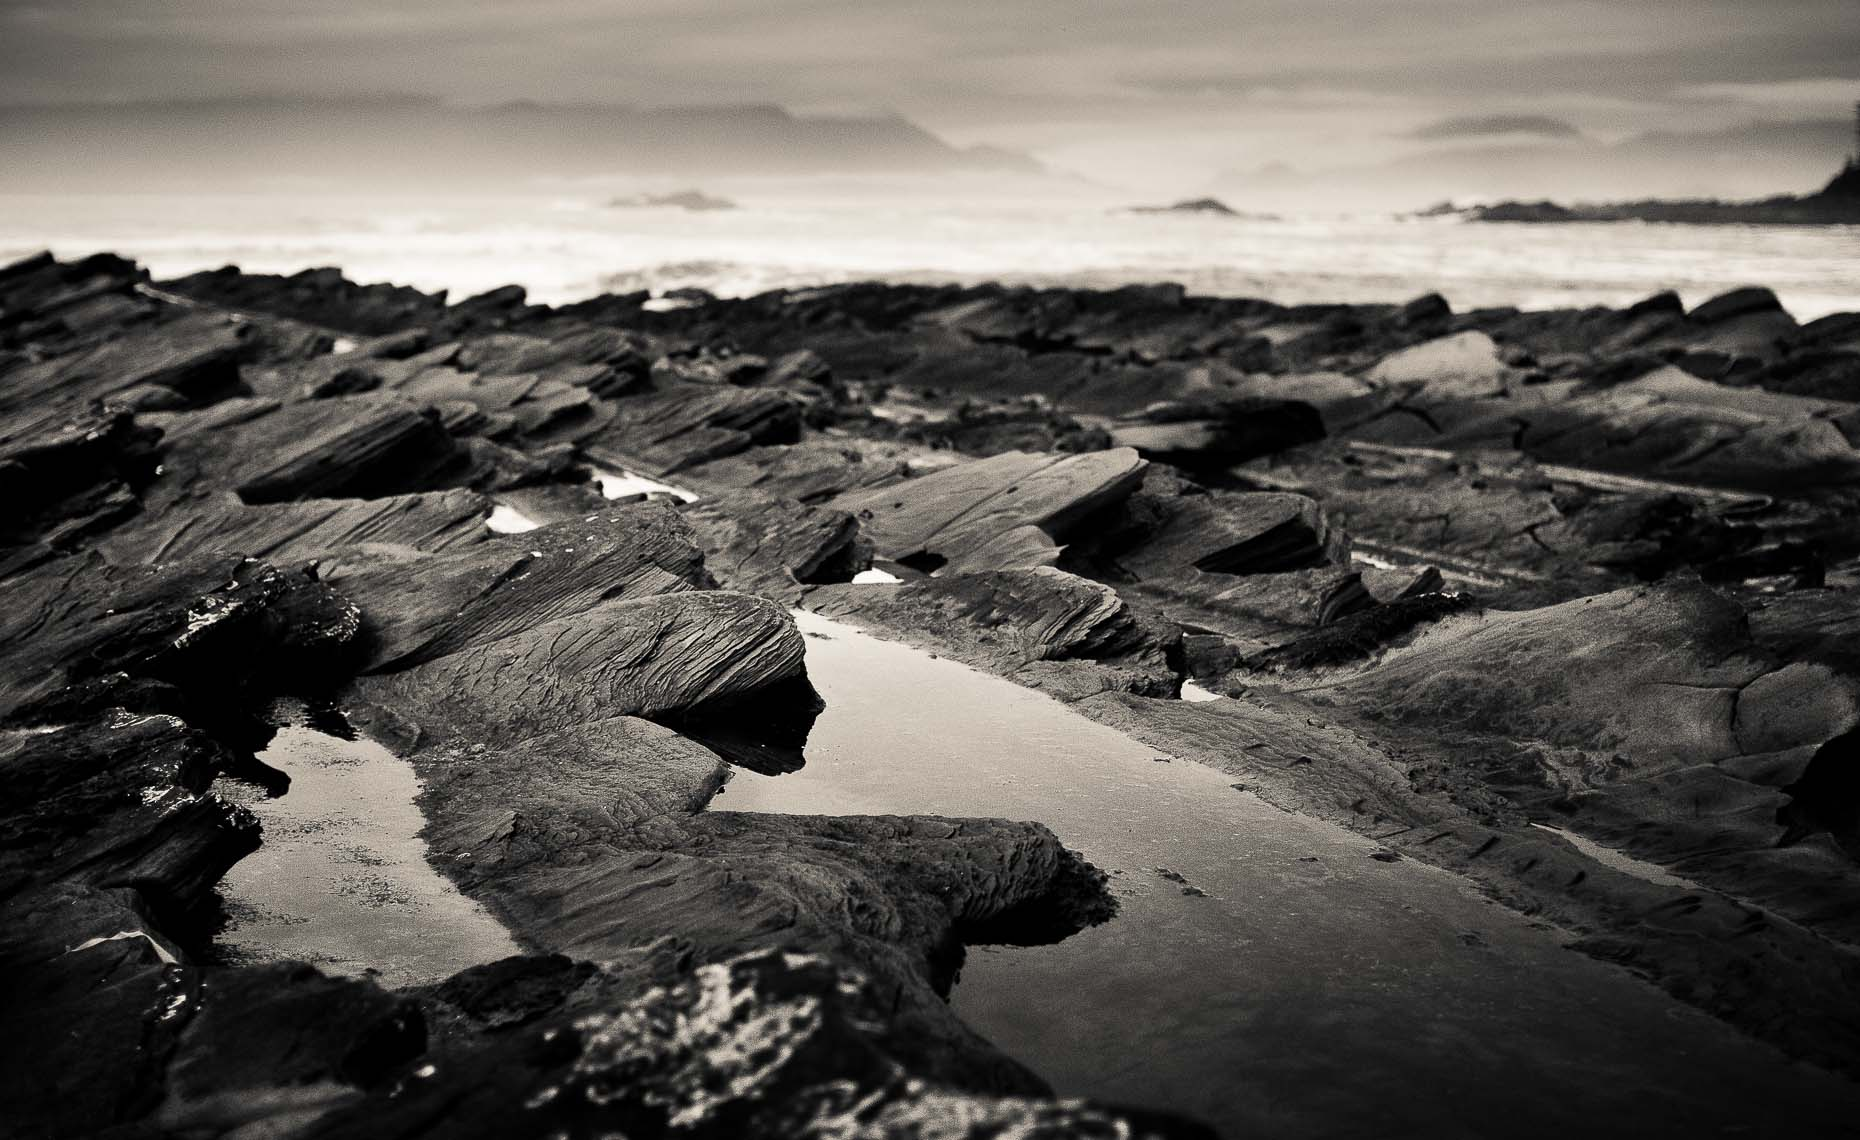 Vancouver island rocks and tide documented by whistler commercial photographer.